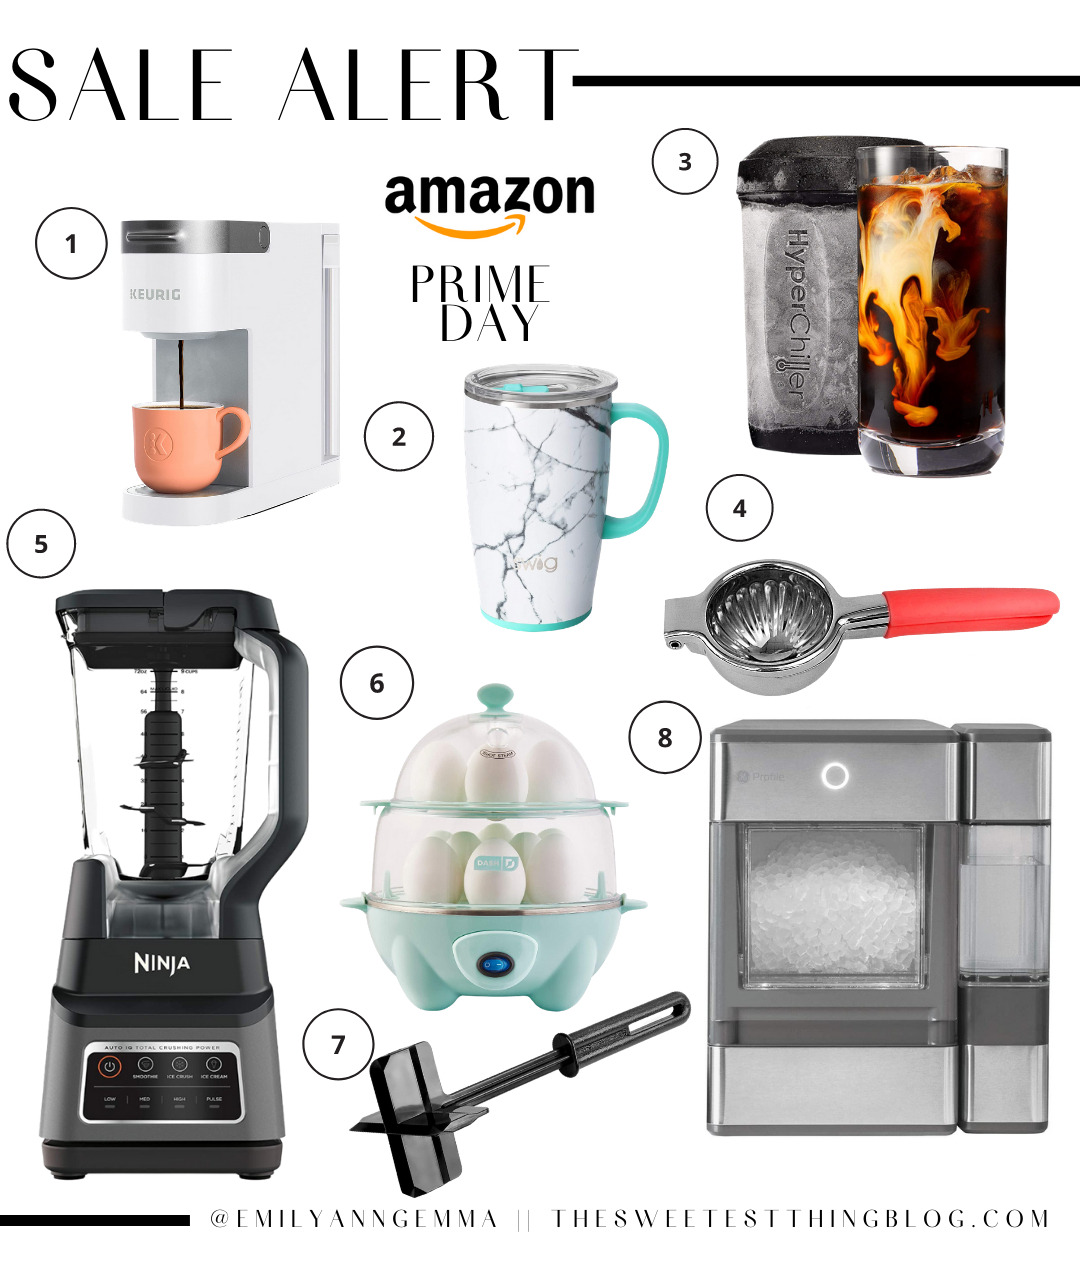 Amazon Prime Day by popular US life and Style blog, The Sweetest Thing: collage image of a lemon squeezer, Hyper Chiller, Keurig coffee maker, Ninja blender, pebble ice machine, rapid egg cooker, insulated thermos, and meat chopper.